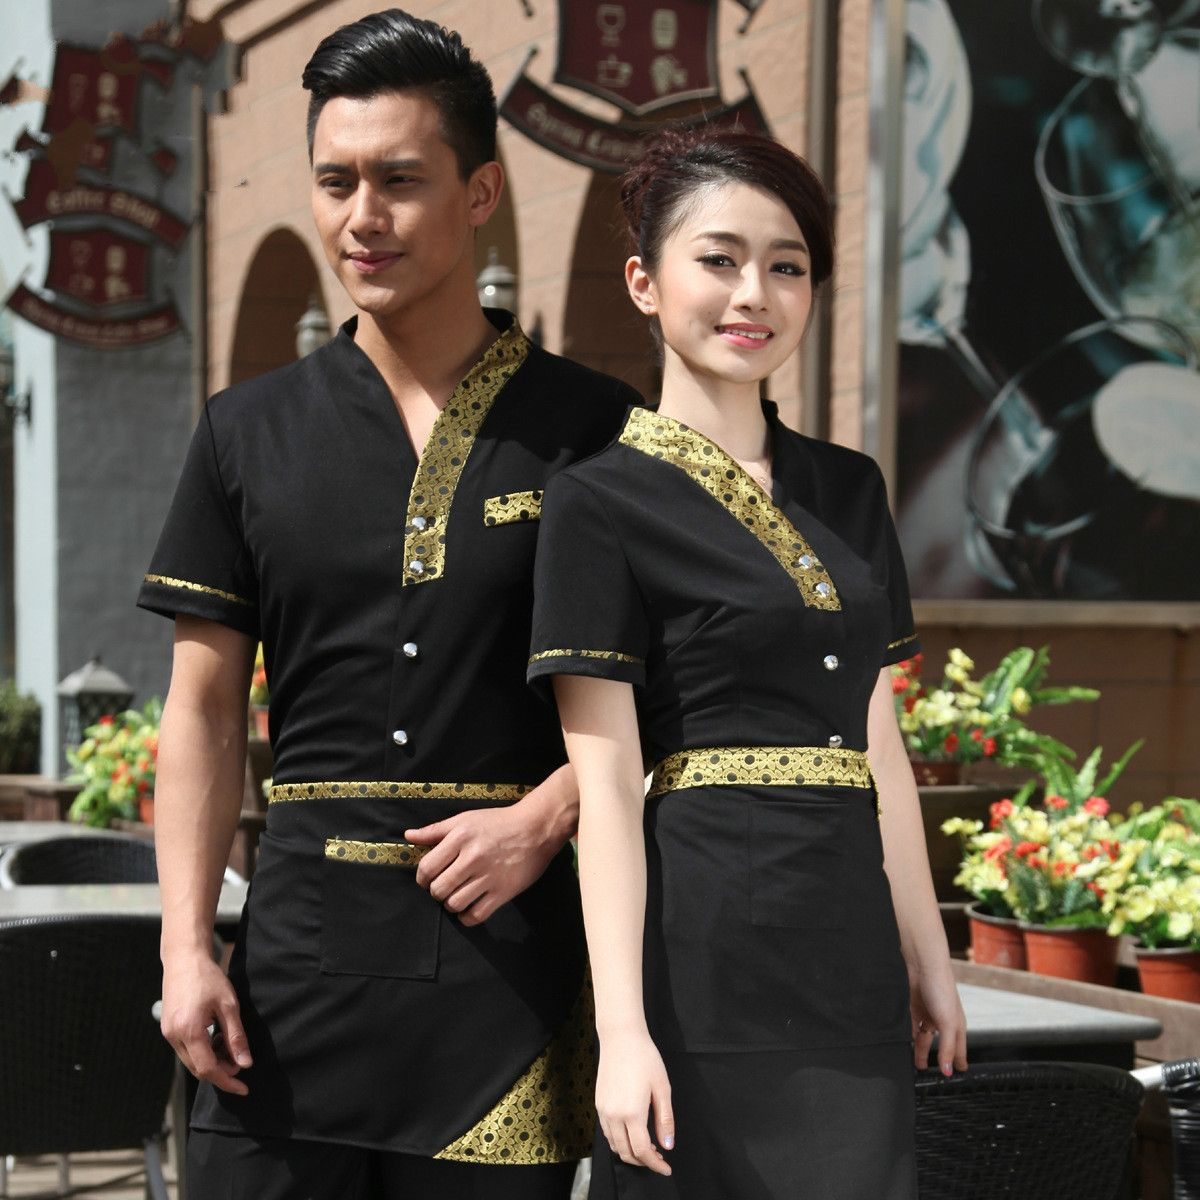 Beautiful Asian Restaurant Uniform Ideas